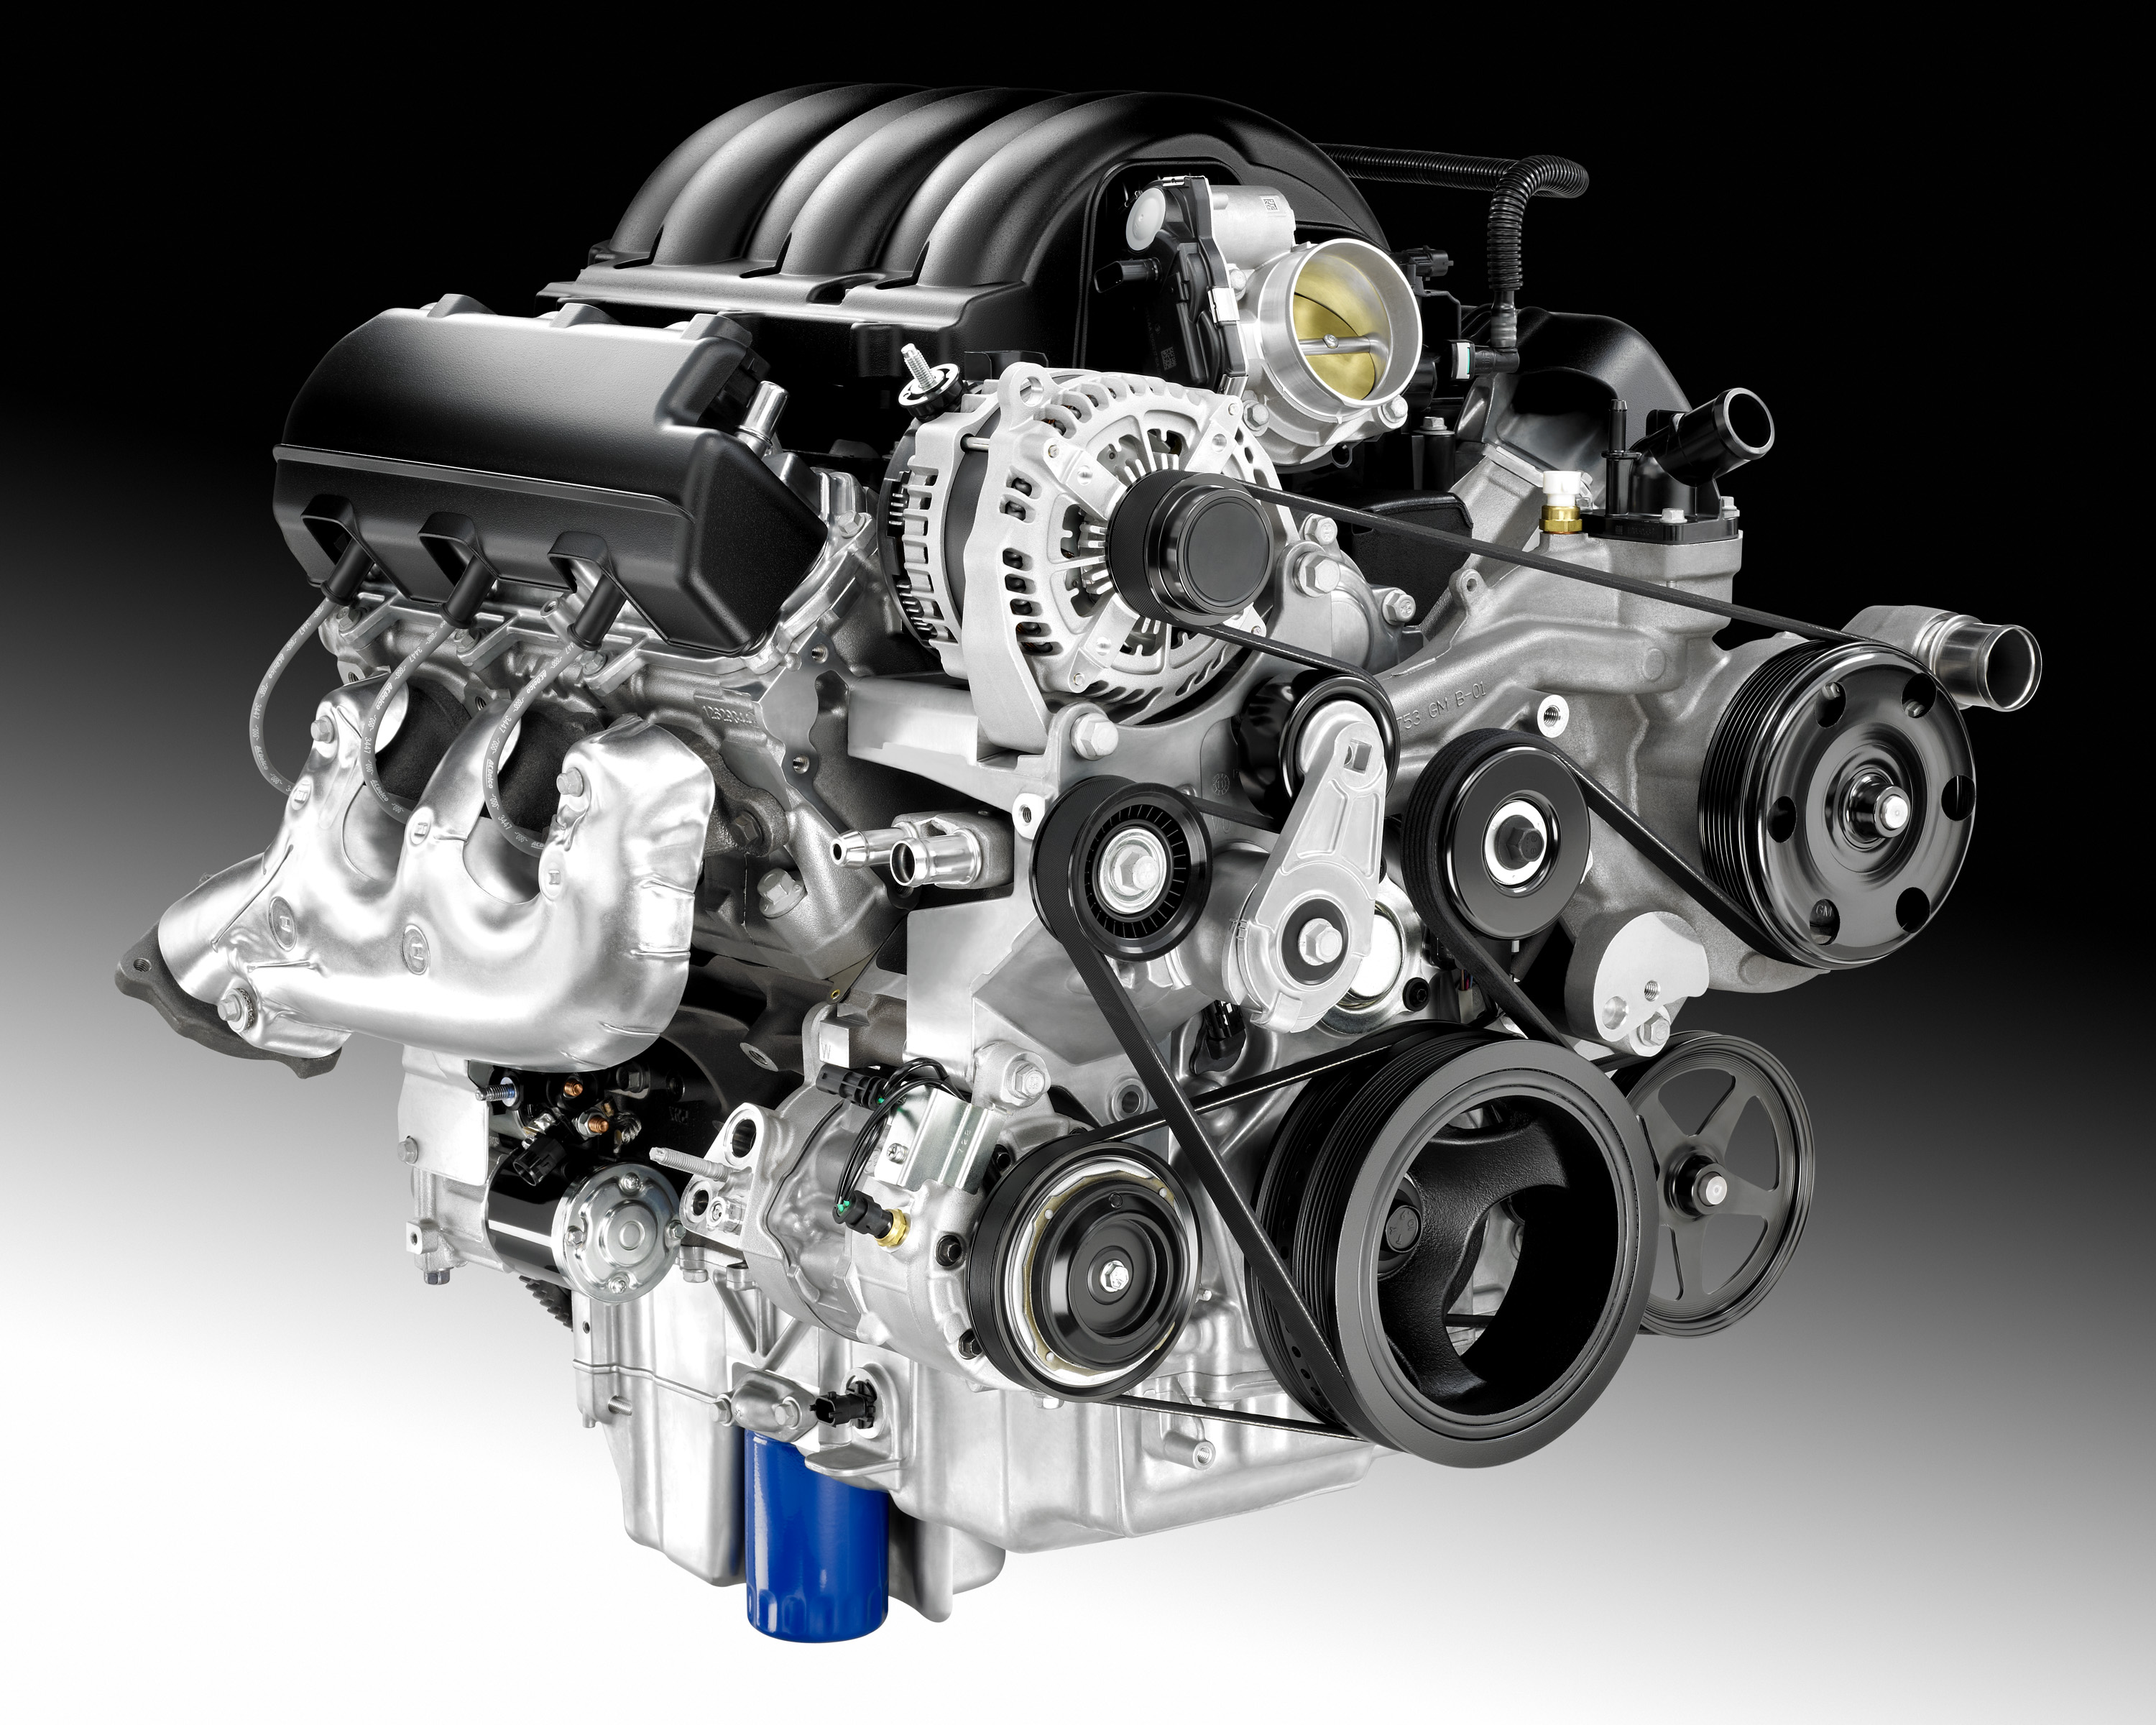 trio of new ecotec3 engines powers silverado and sierra rh media gm com 5 3 Chevy Motor Diagram 2000 Chevy Silverado 5 3 Engine Diagram